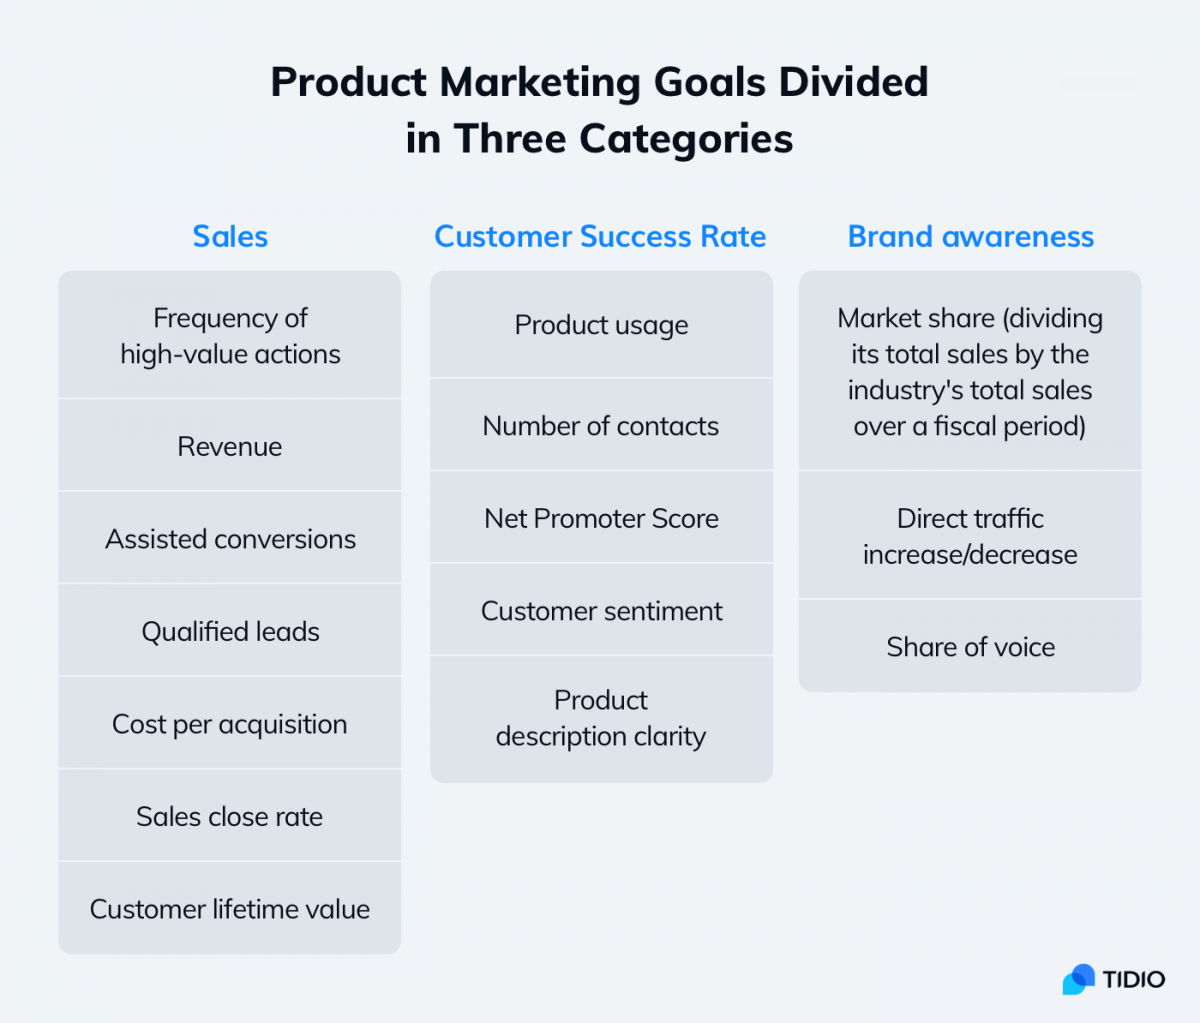 Table with product marketing goals divided in 3 categories